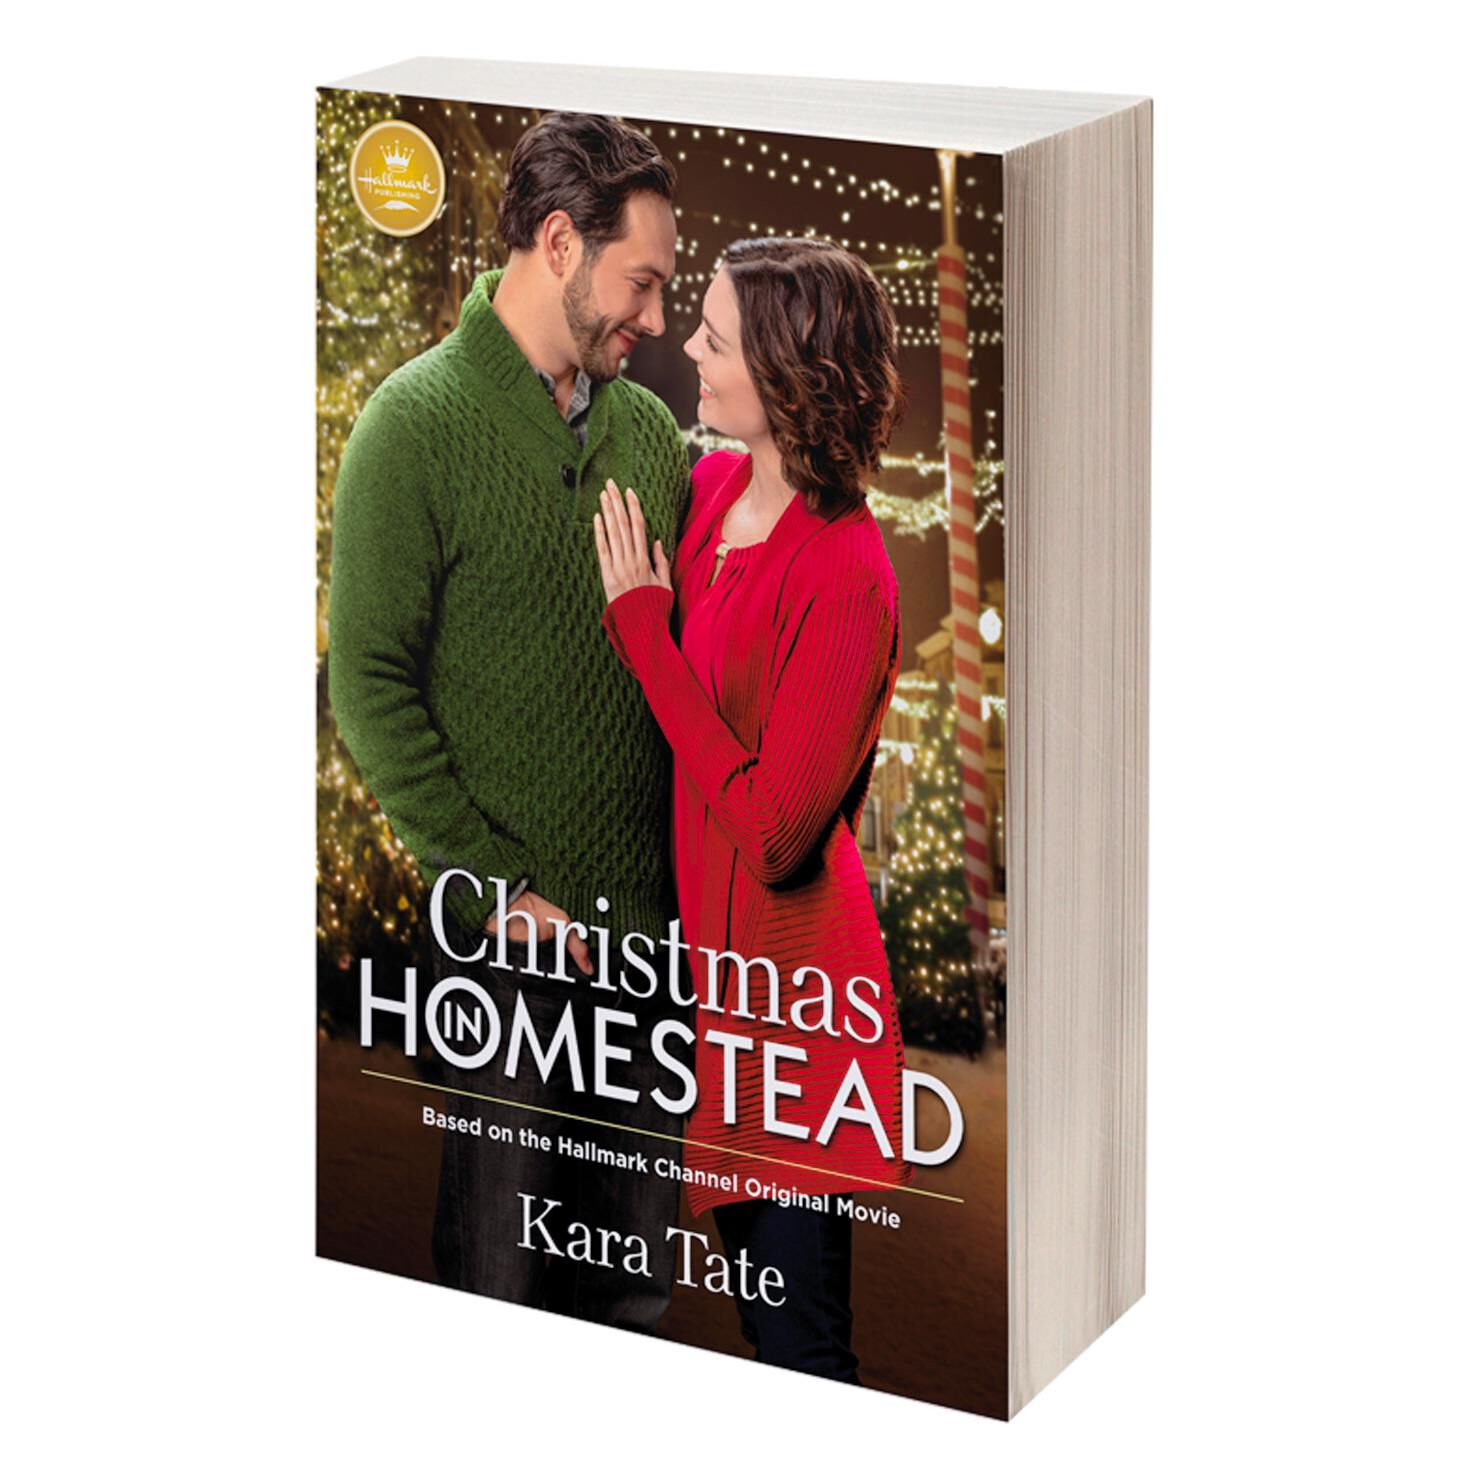 Christmas In Homestead.Christmas In Homestead Book